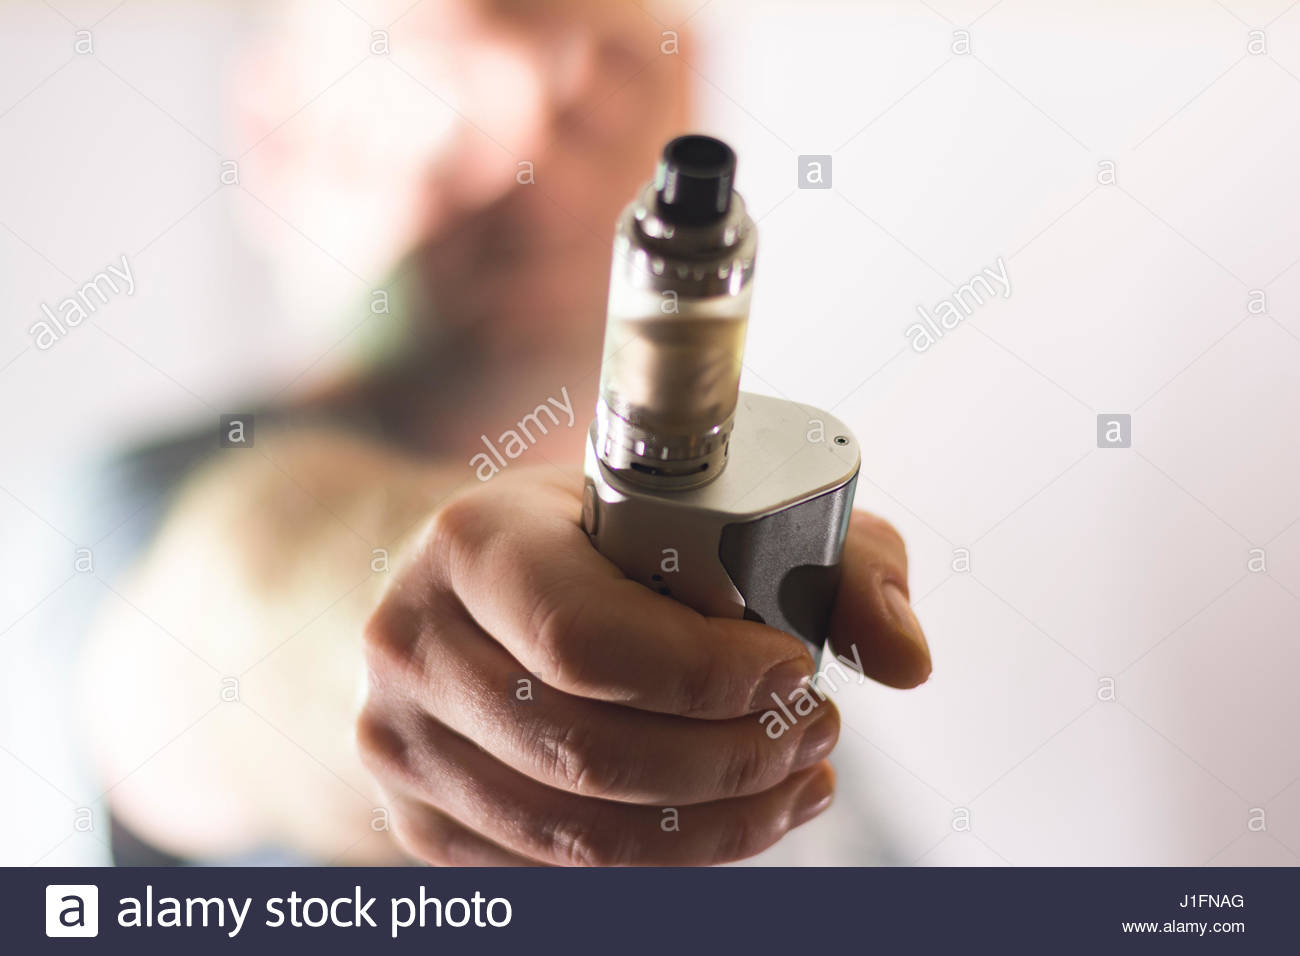 e cigarette on man hand  blurred background composition photograph - Stock Image